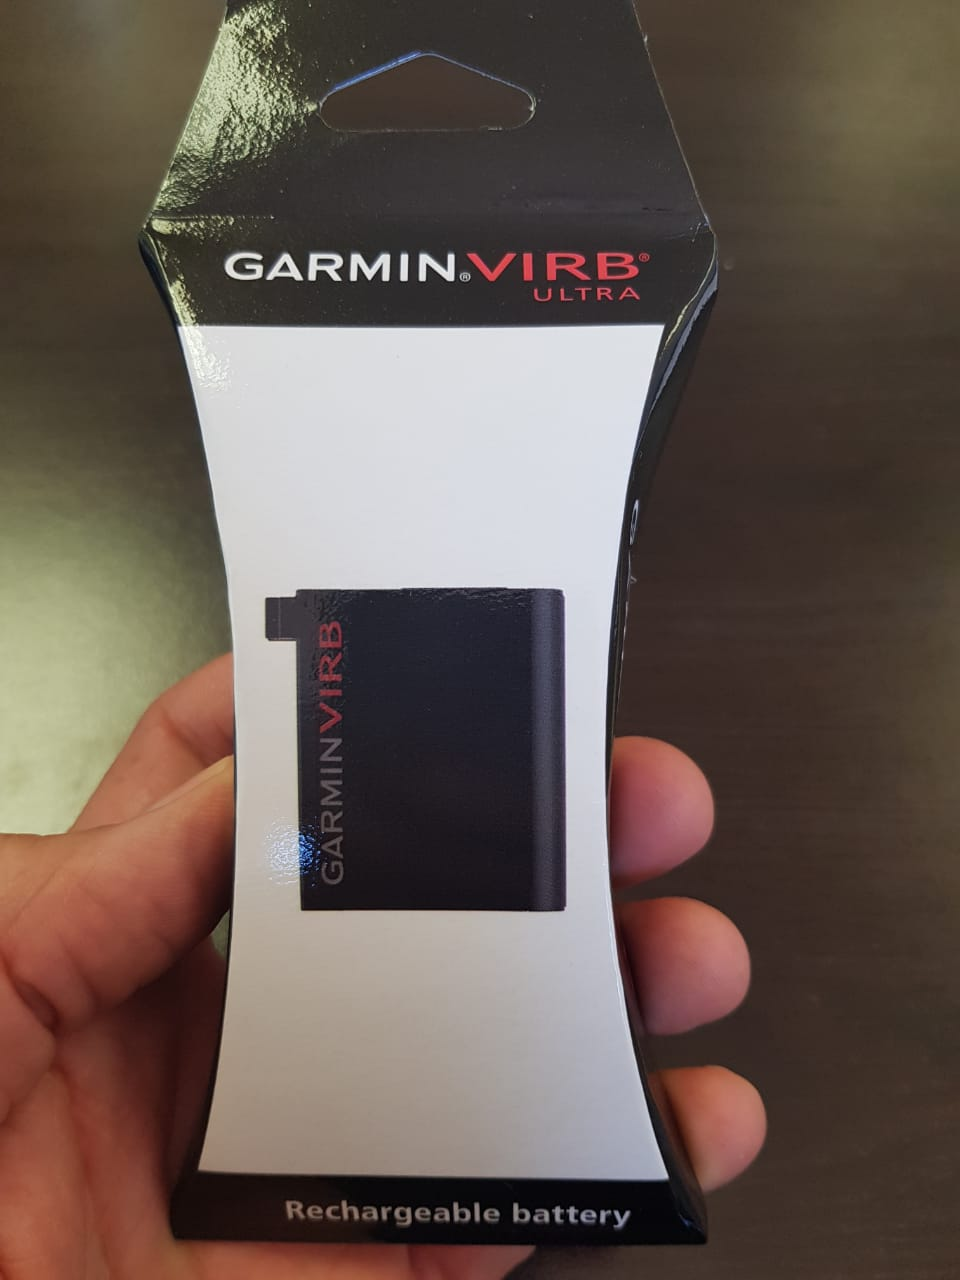 GARMIN VIRB ULTRA 30 ACTION CAMERA